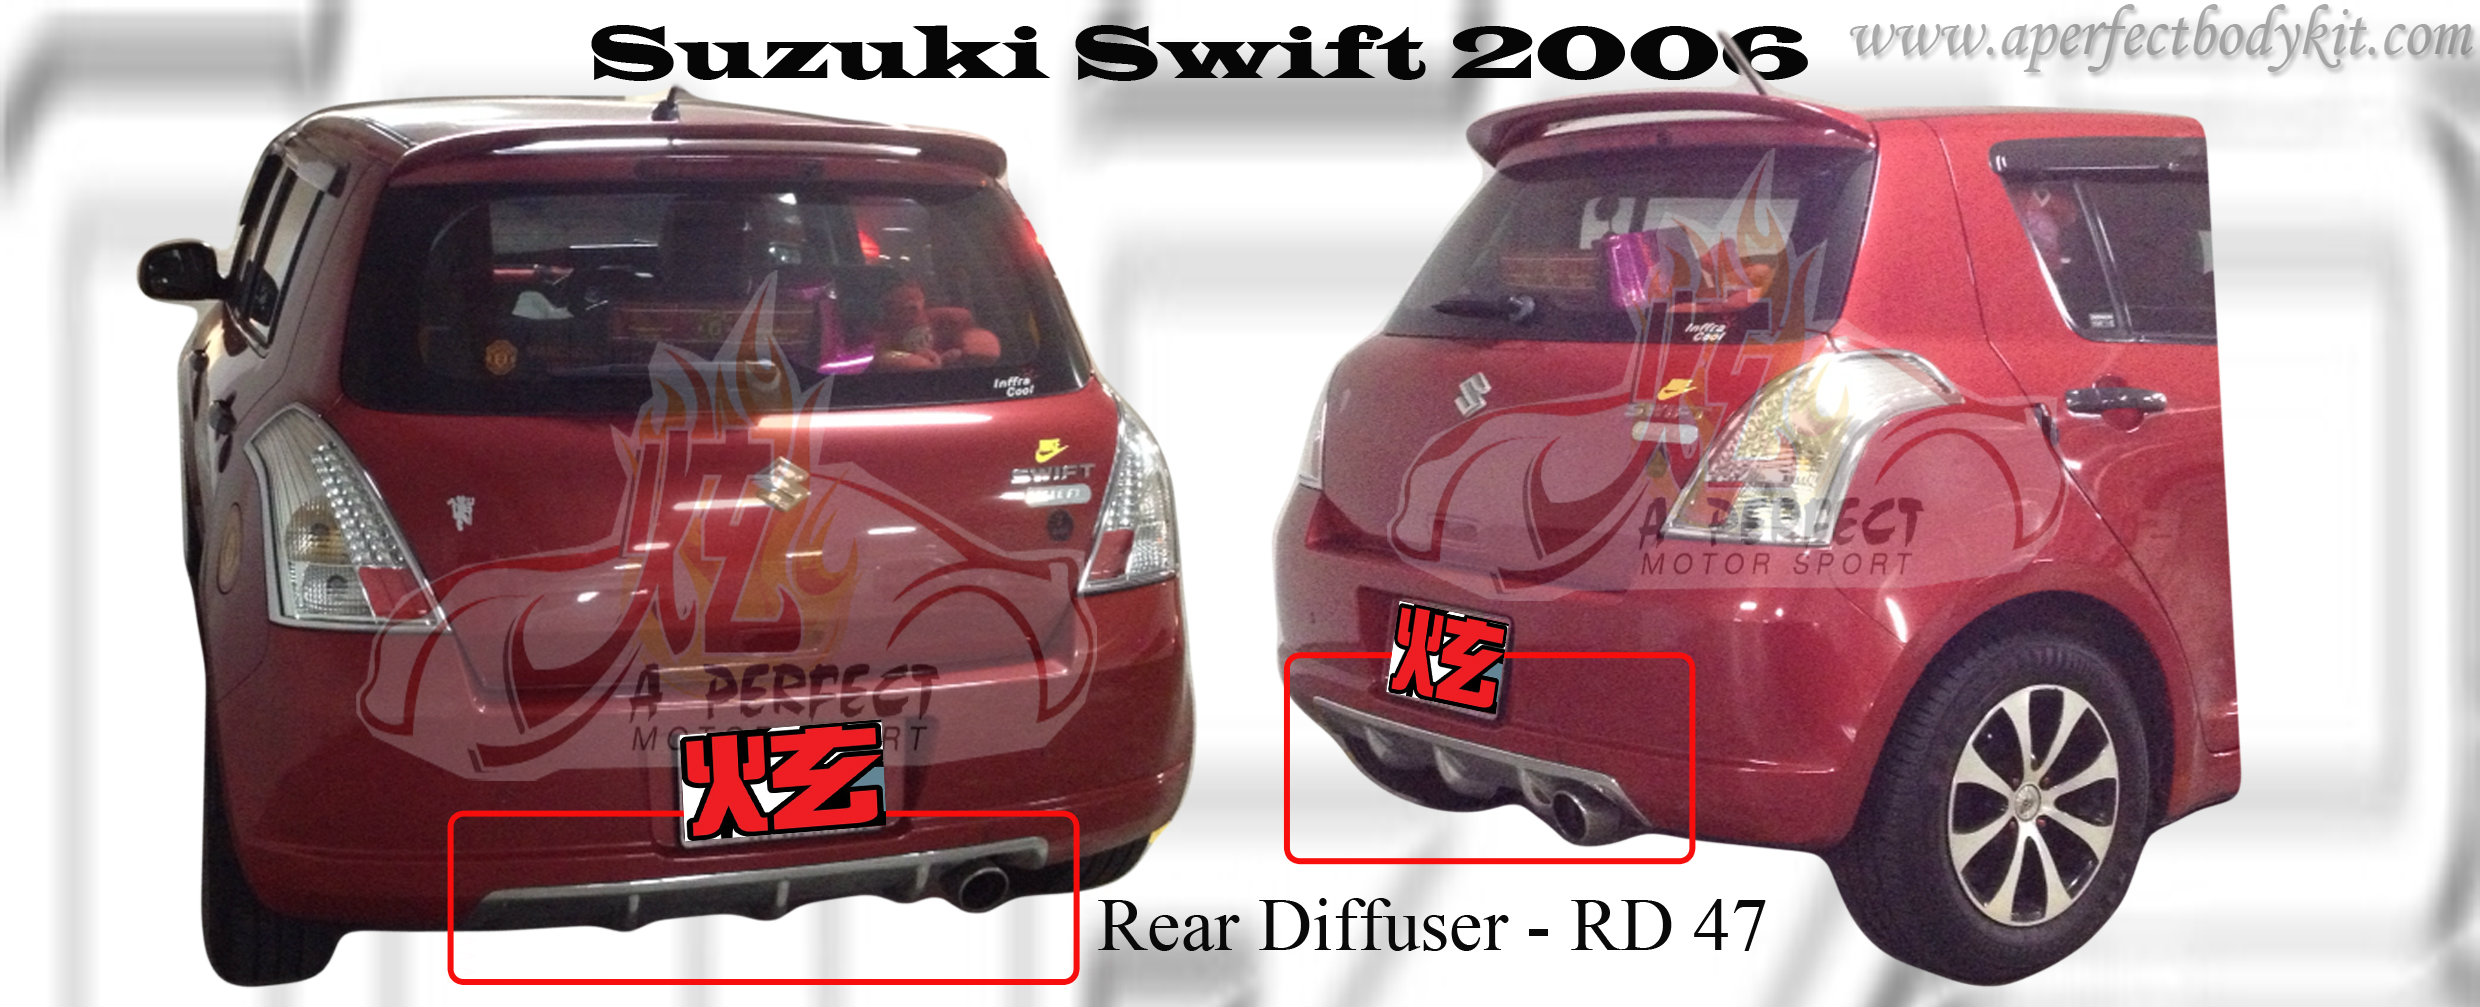 Suzuki Swift 2006 Rear Diffuser